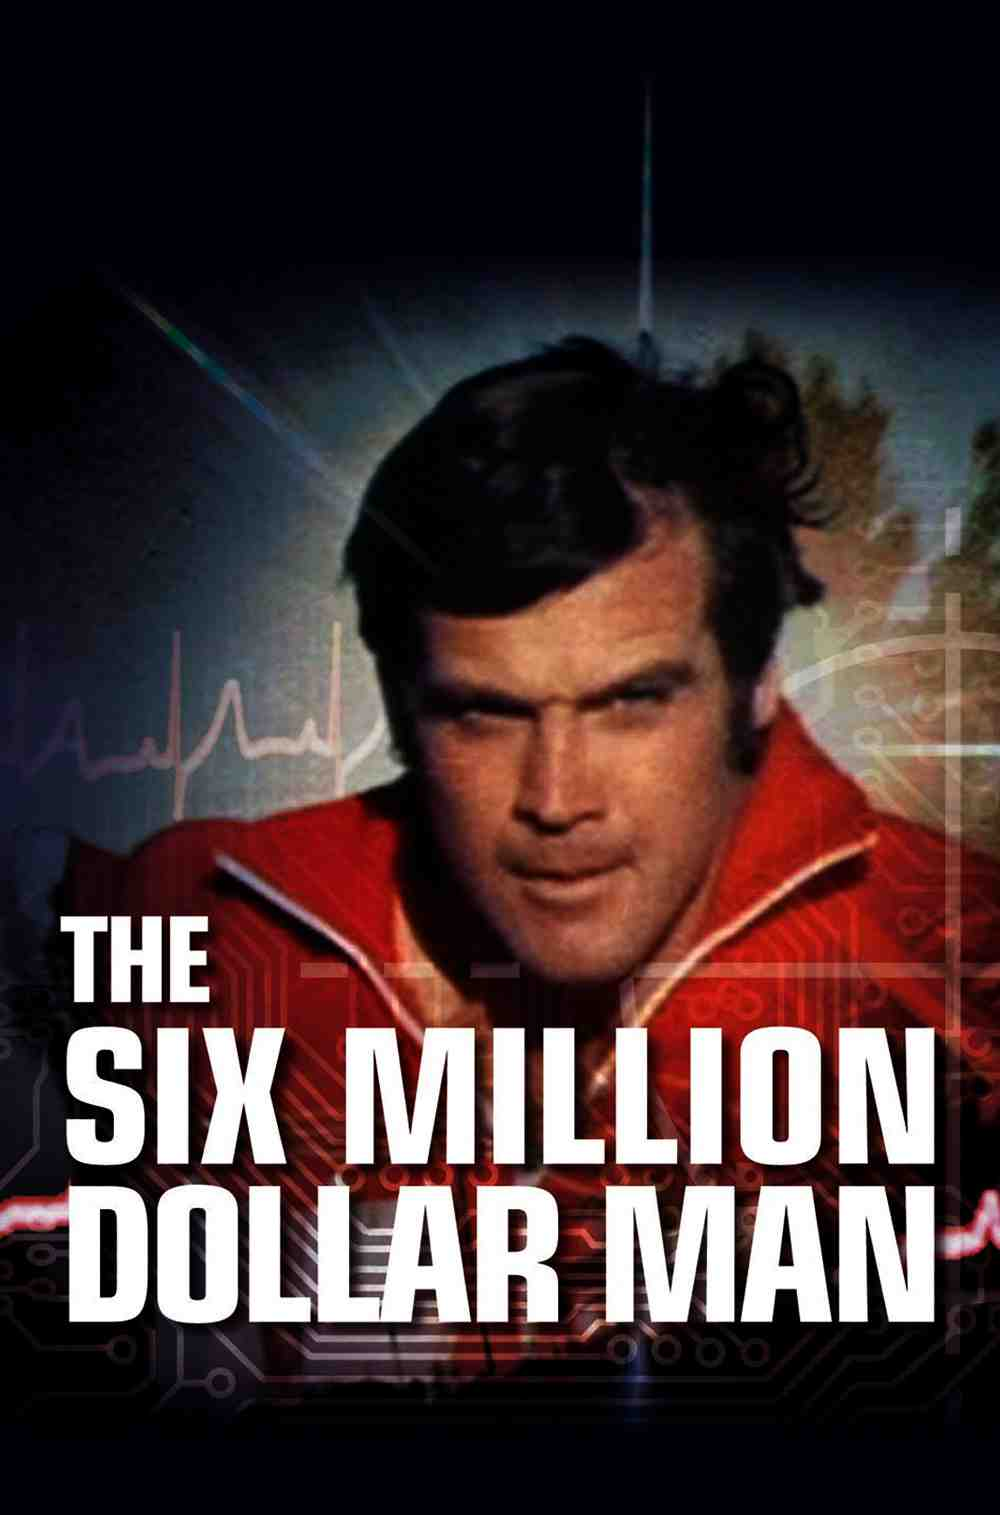 Poster for The Six Million Dollar Man (1974)